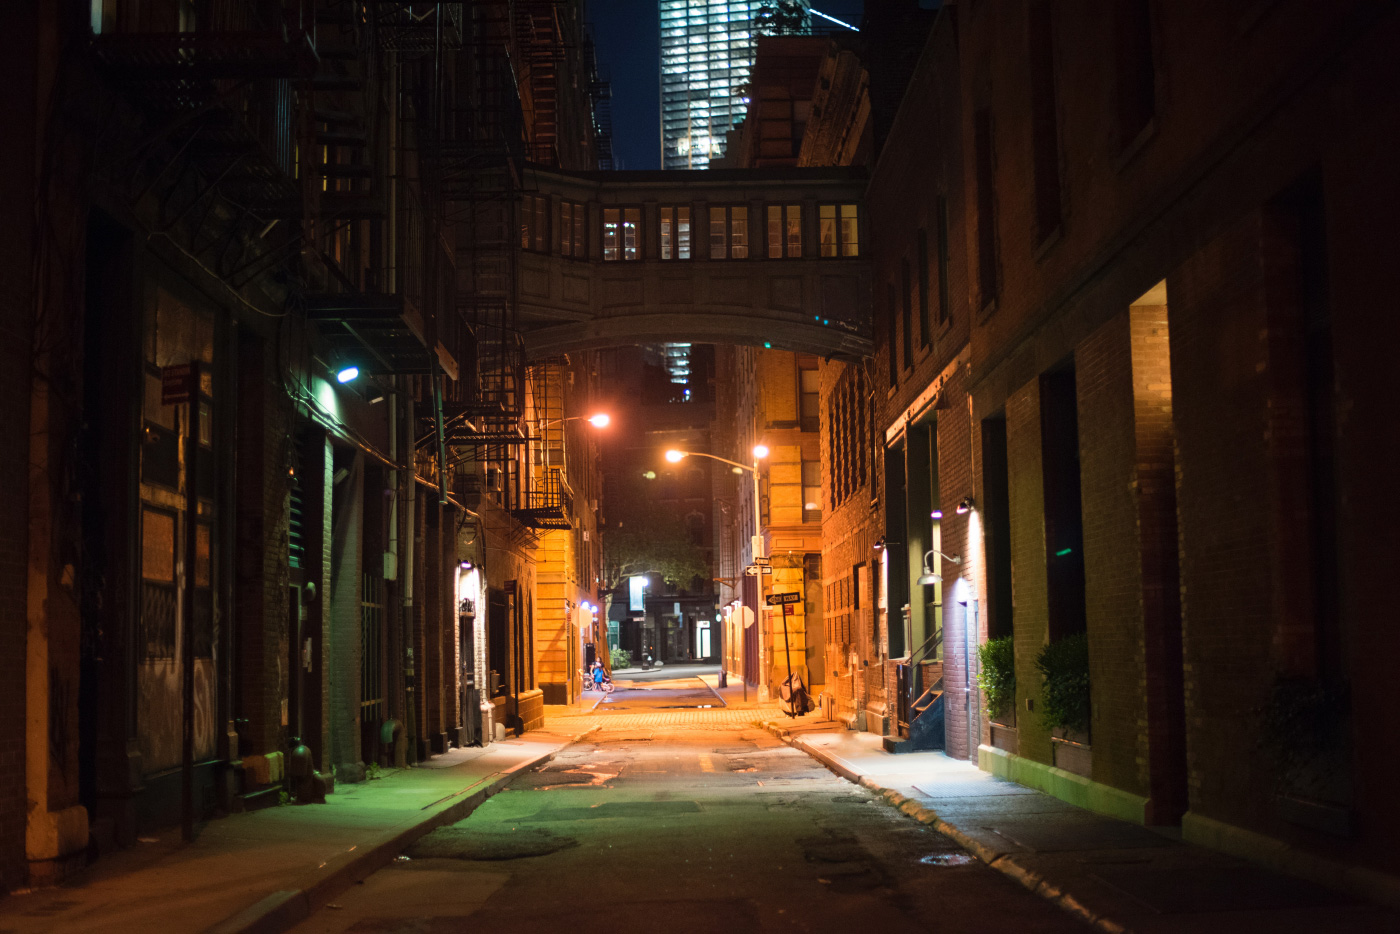 The empty streets of Manhattan at night,. The DDC has put a pause on public design work